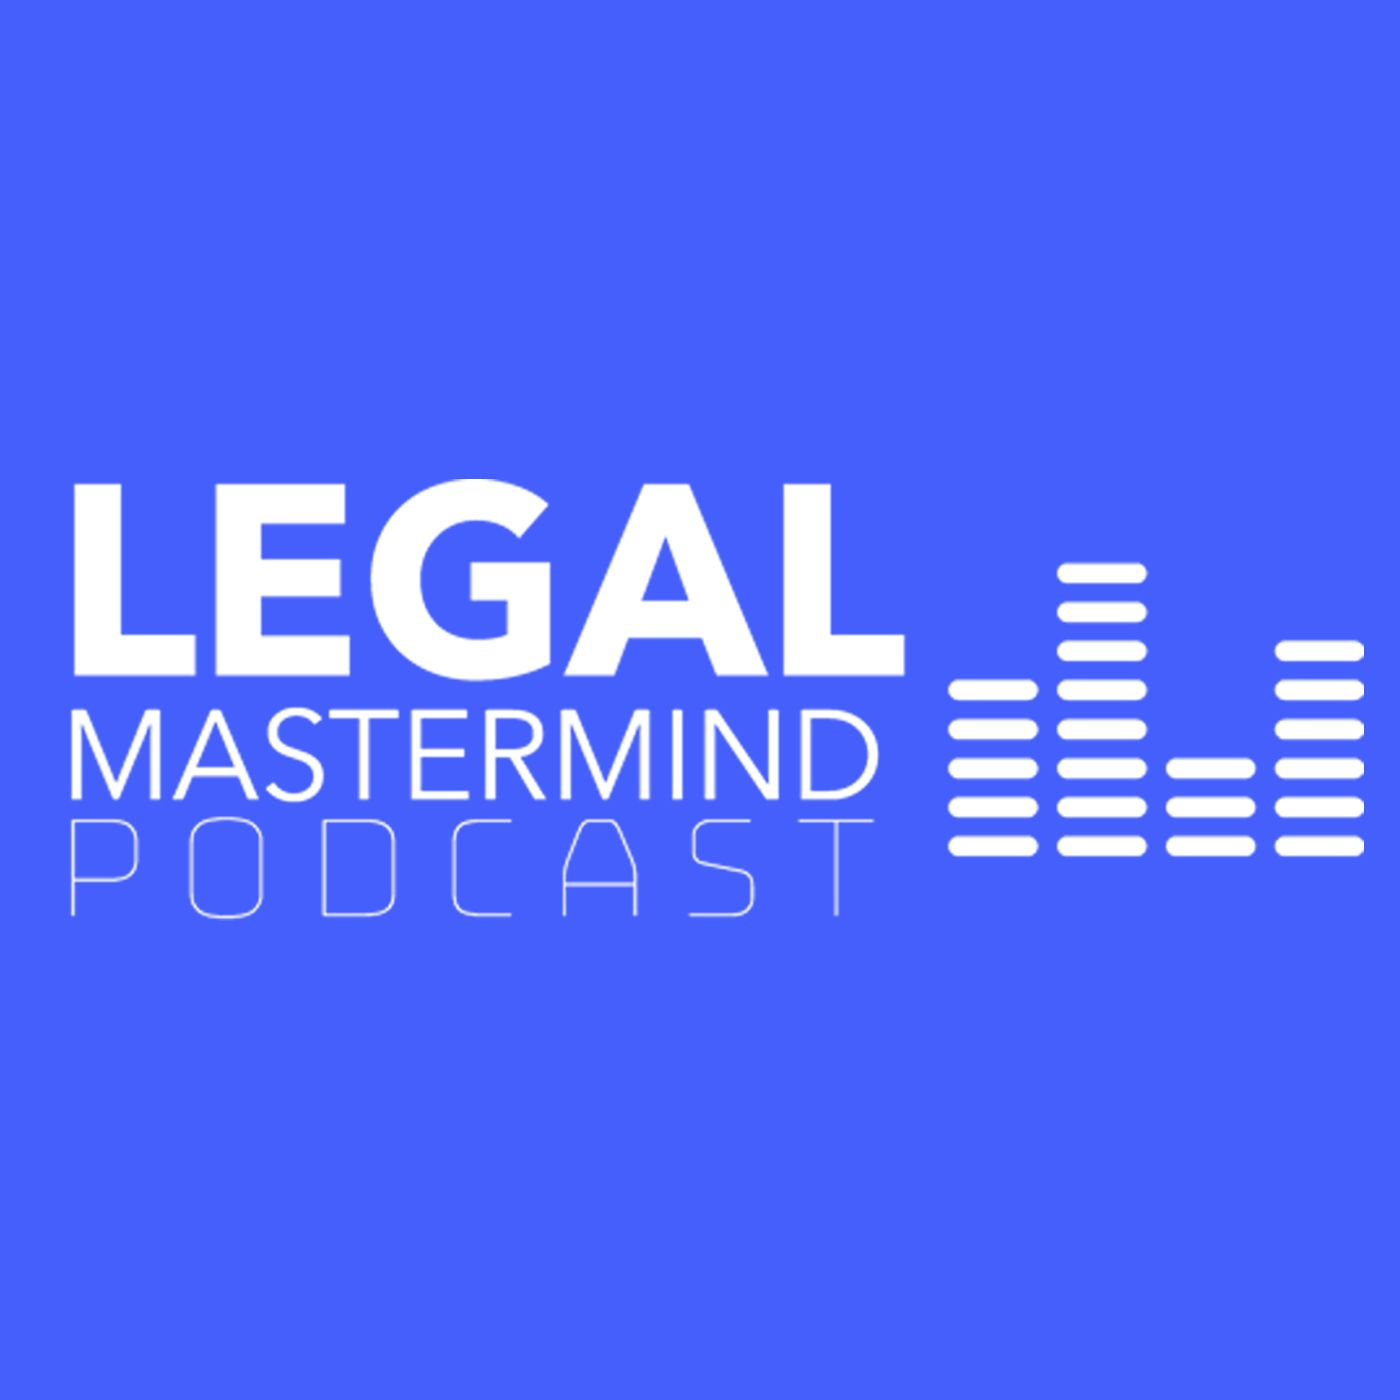 EP 65 - Terri Pepper Gavulic - Benefits to Being in a Law Firm Networking Group to Obtain Referrals and Expert Opinions